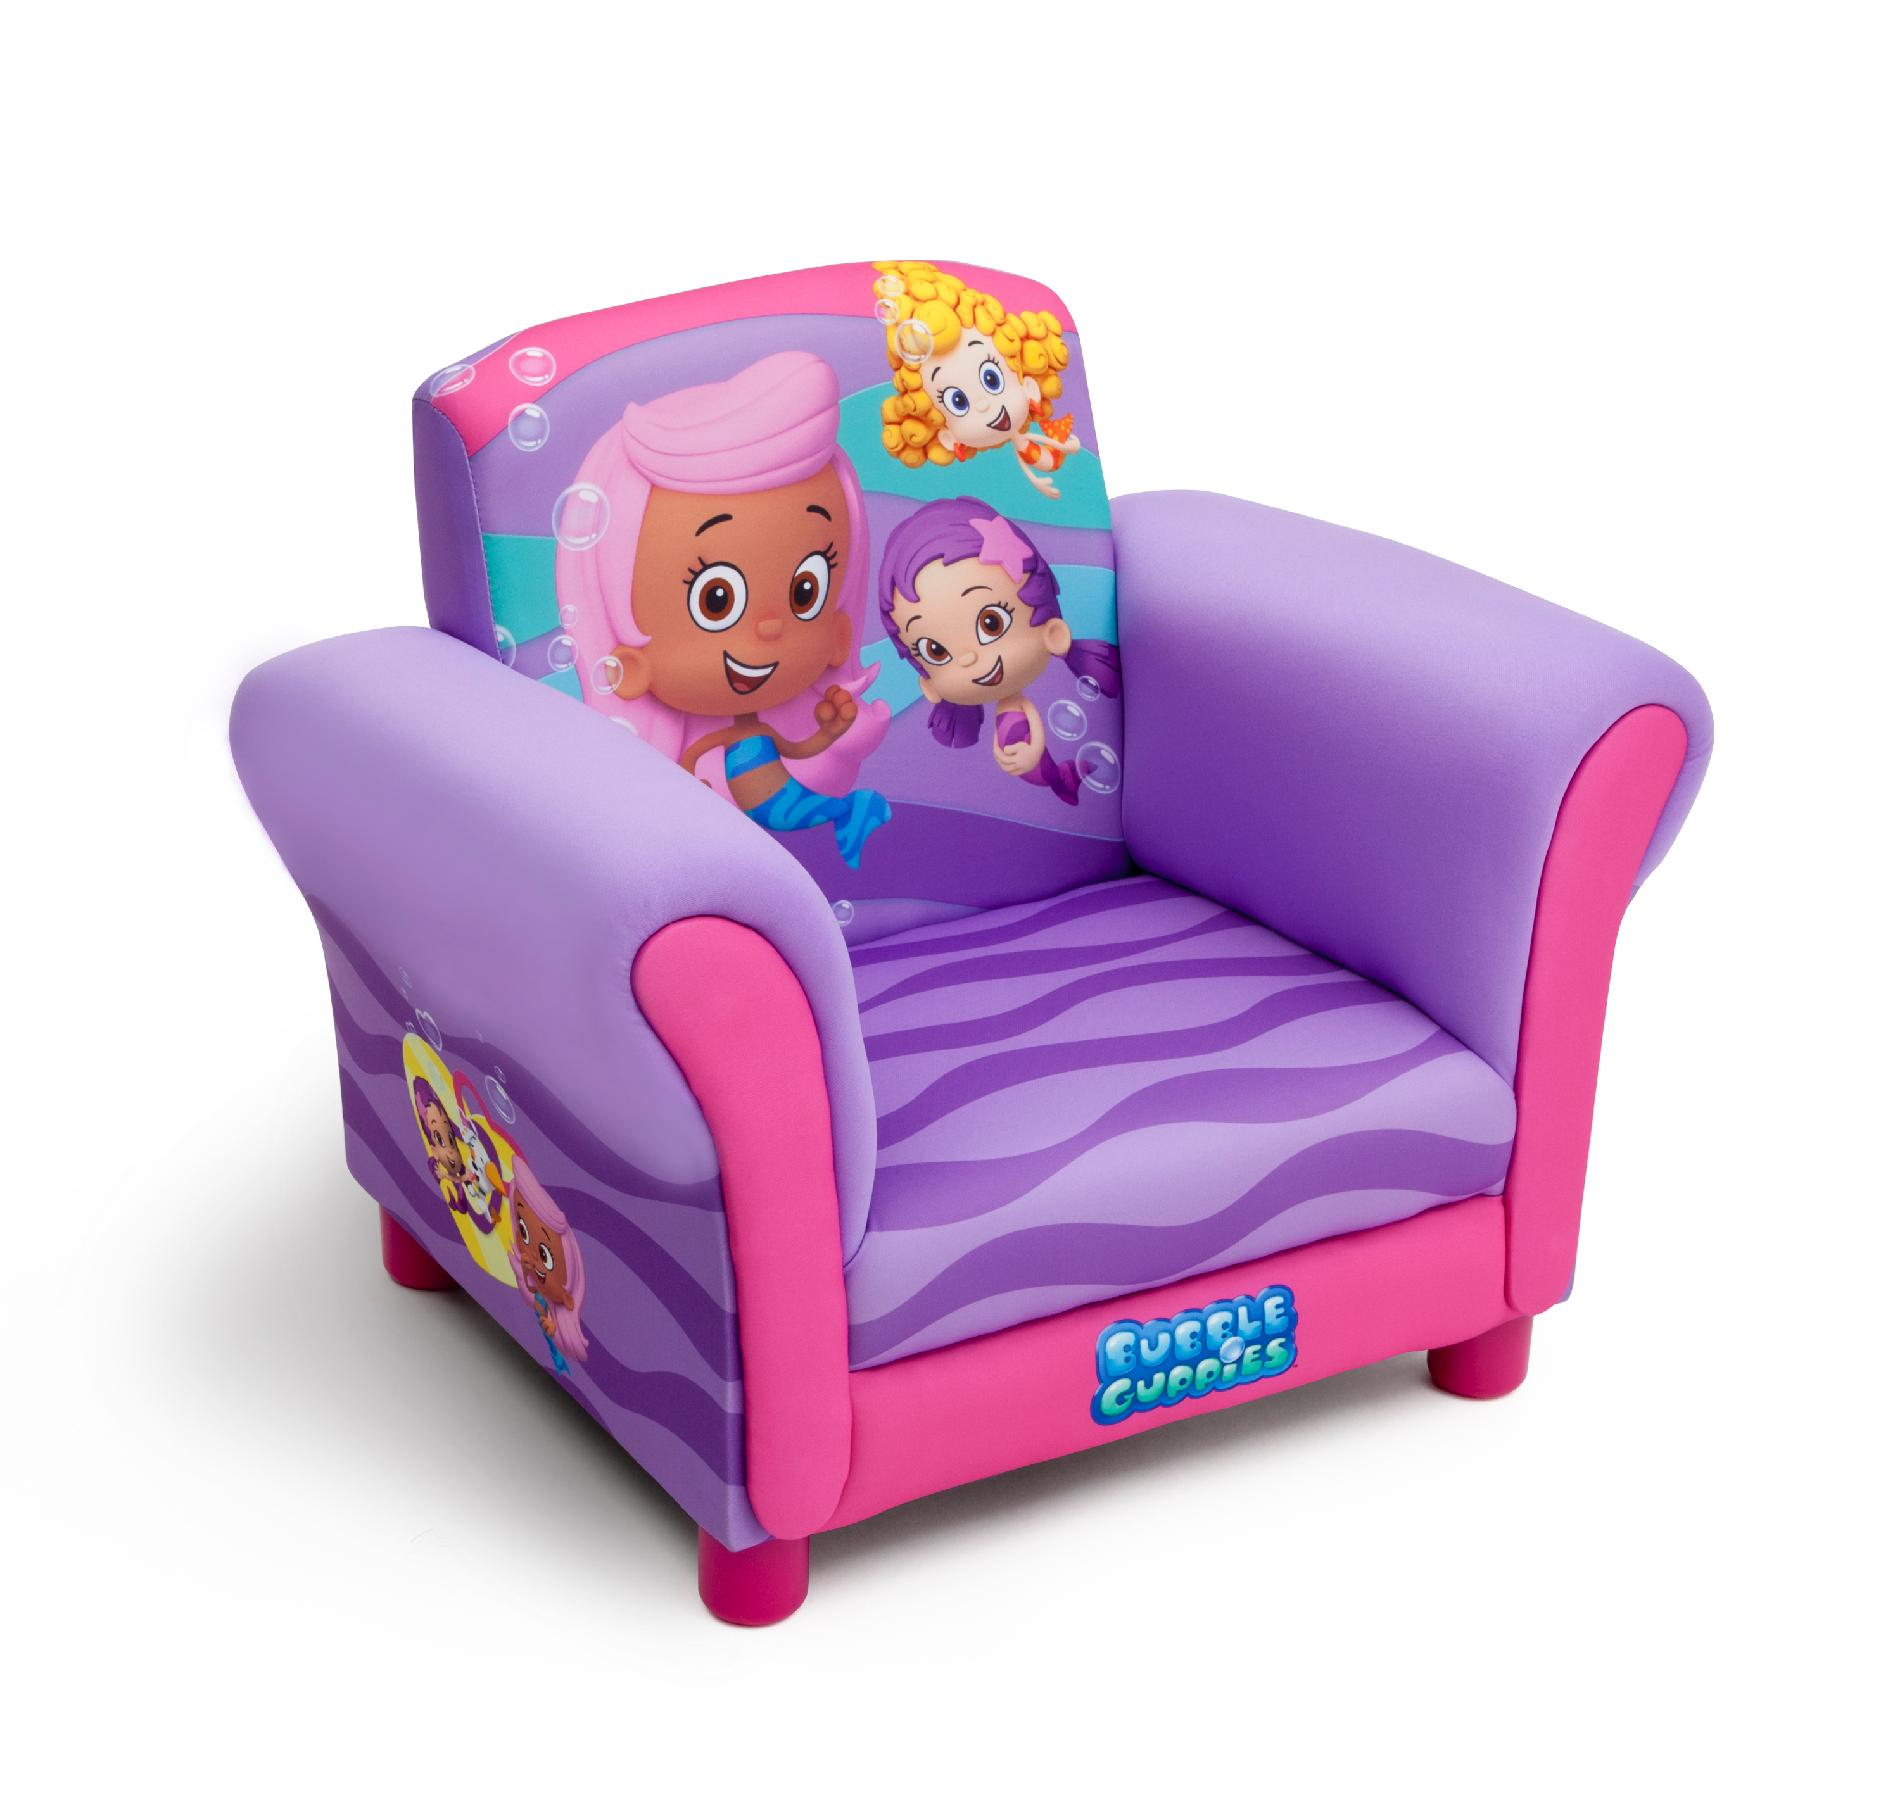 Upholstered Toddler Chair Delta Children Bubble Guppies Upholstered Chair Baby